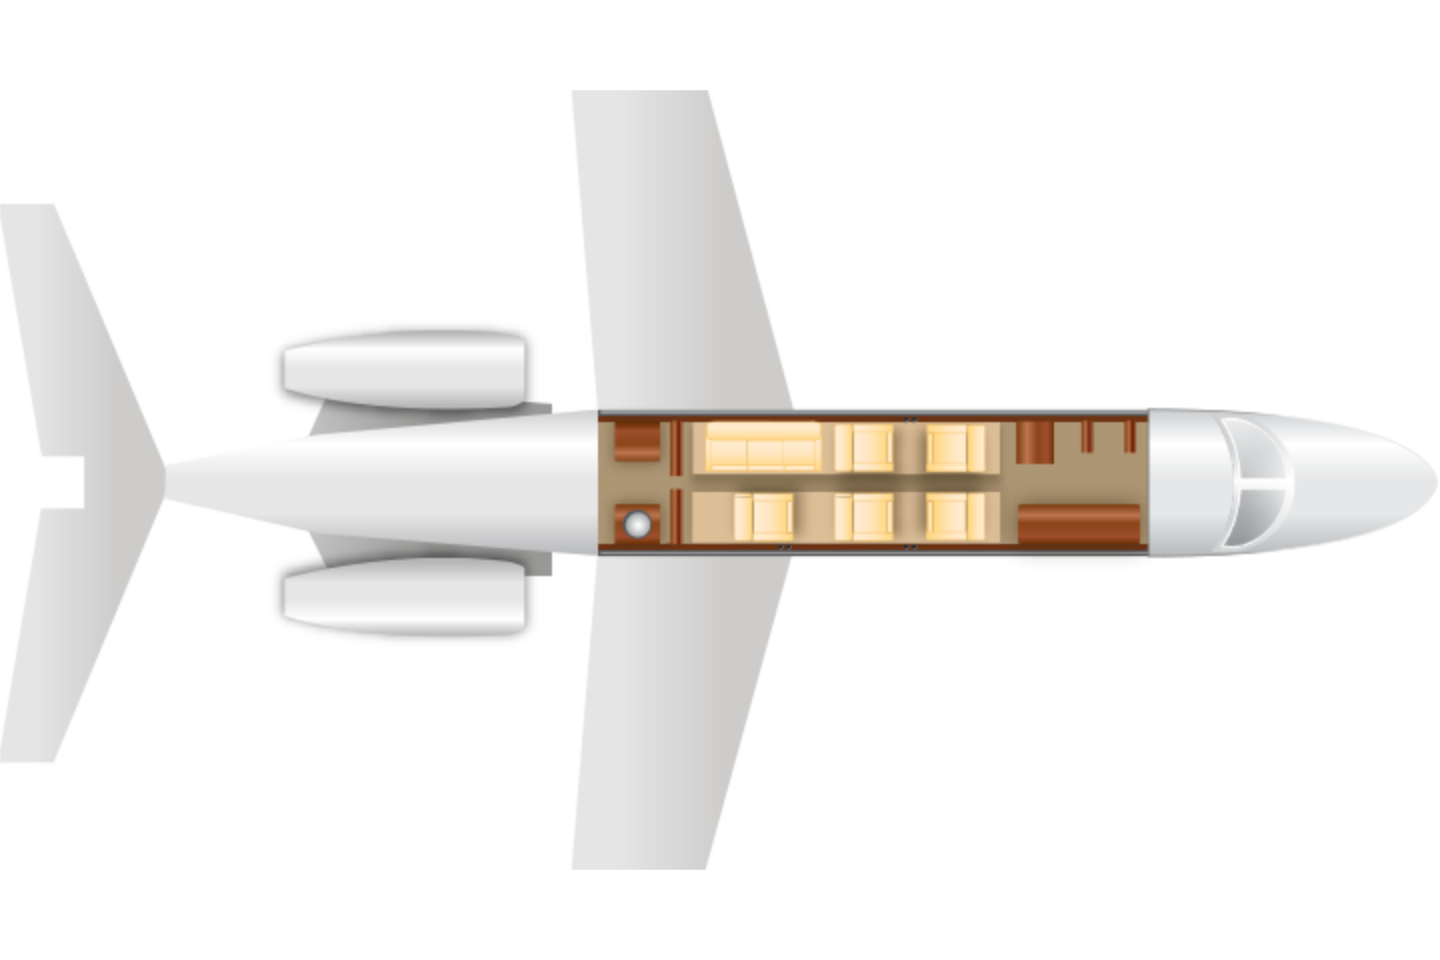 hawker-900-transparent-1412620727.png Floor Plan View